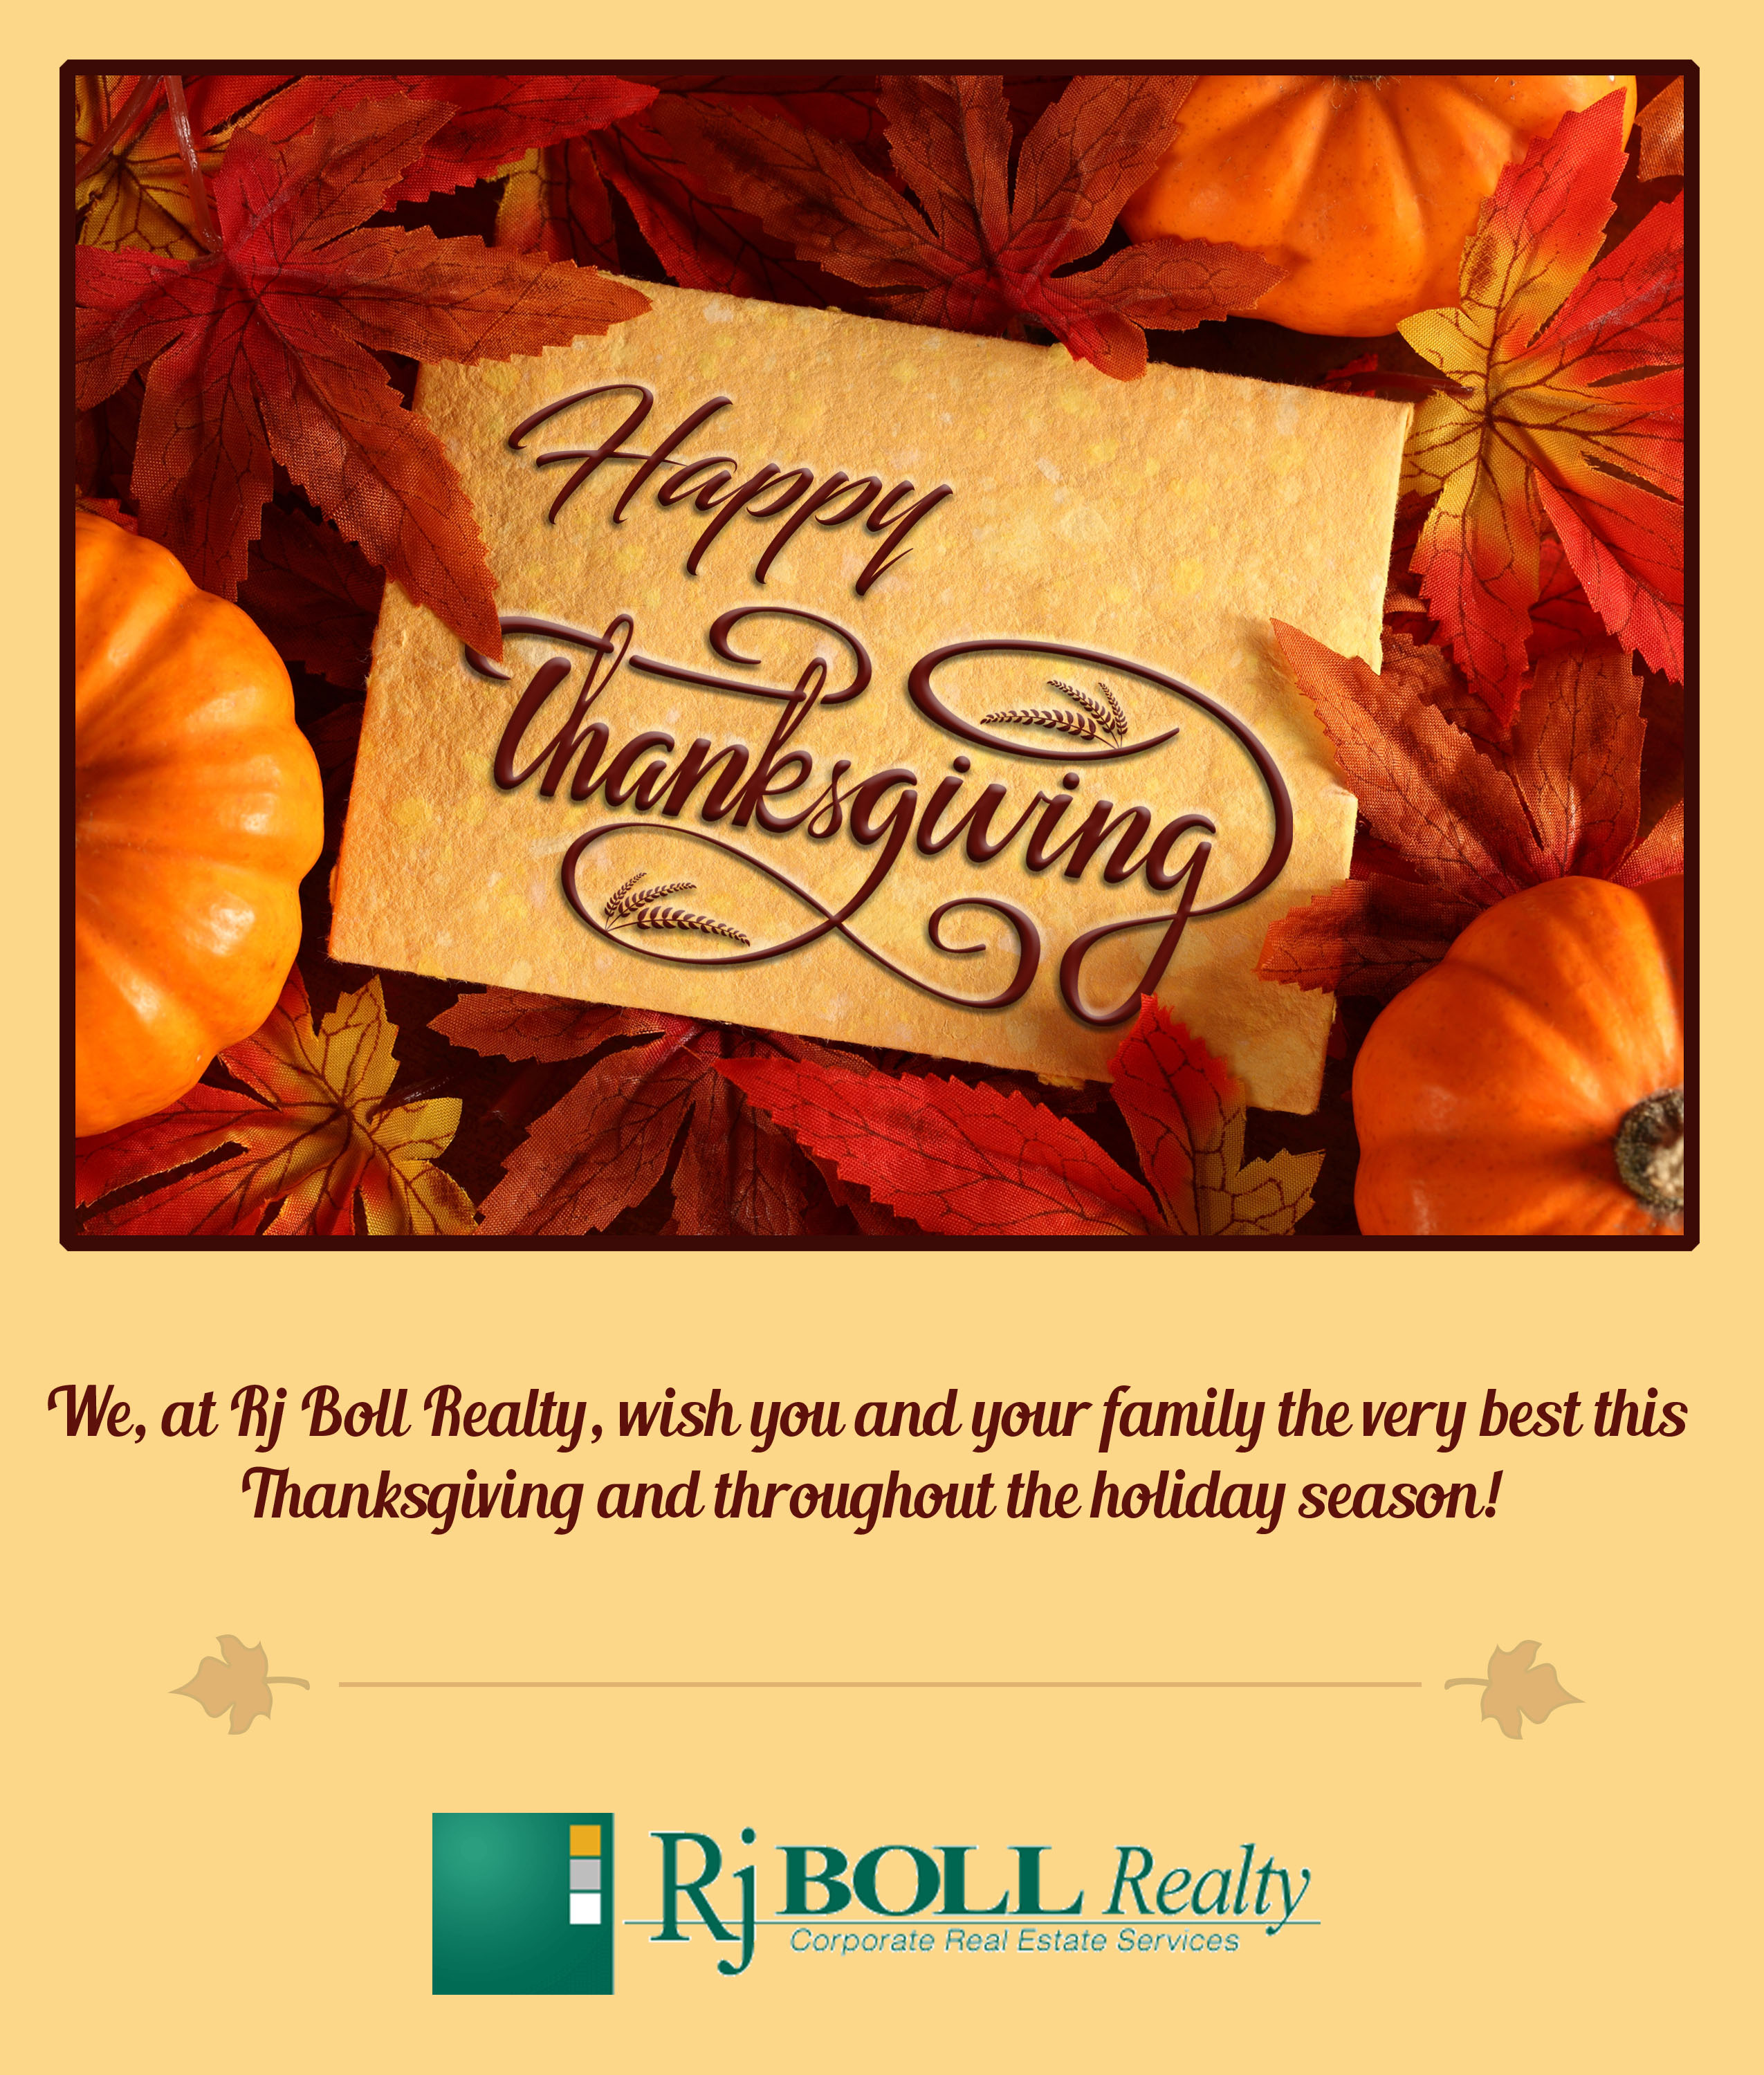 Happy Thanksgiving Rj Boll Realty